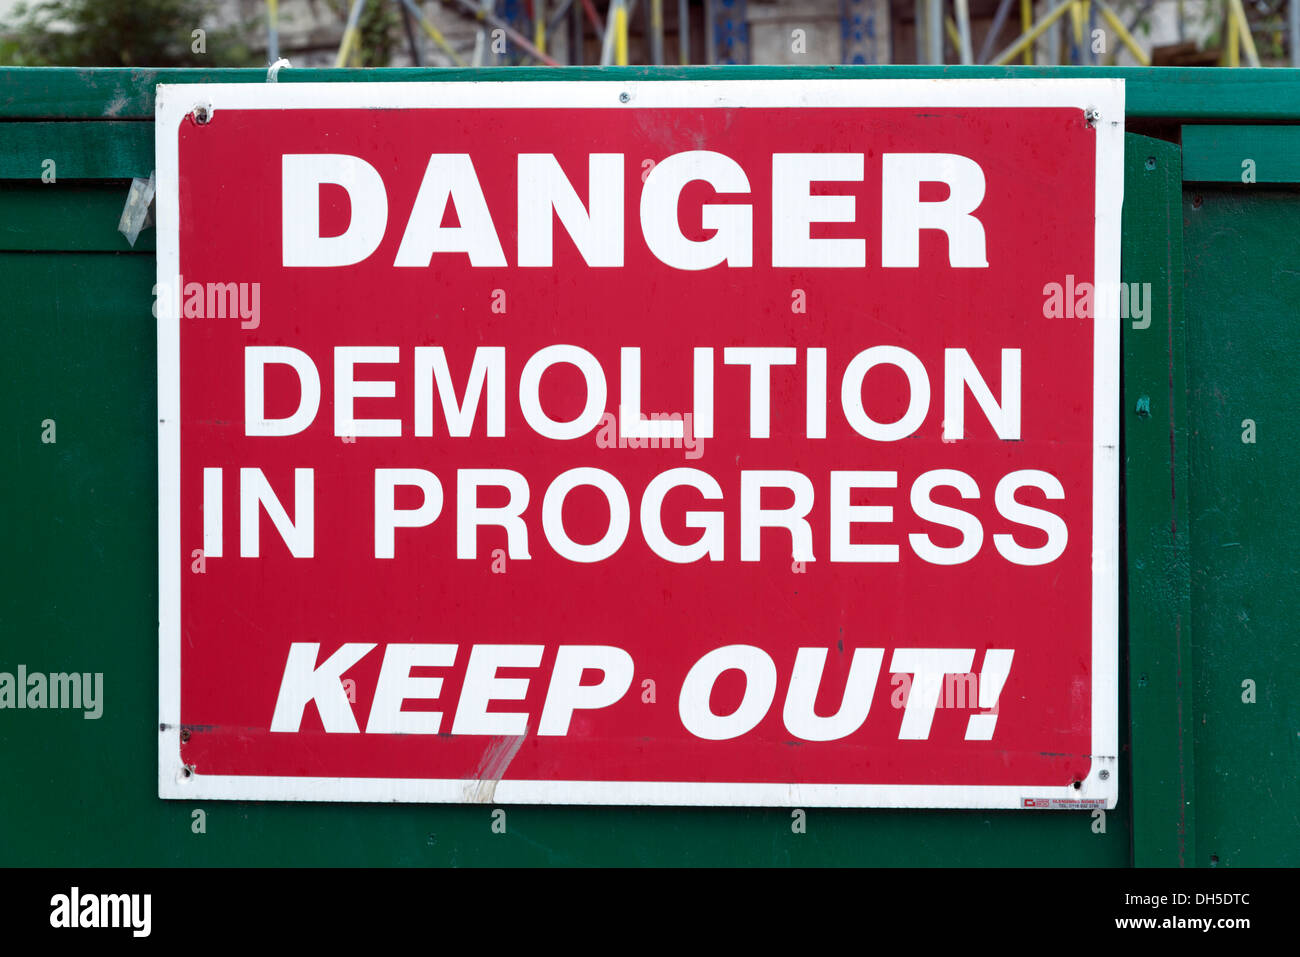 Danger, Demolition in Progress, Keep Out sign, England, UK - Stock Image